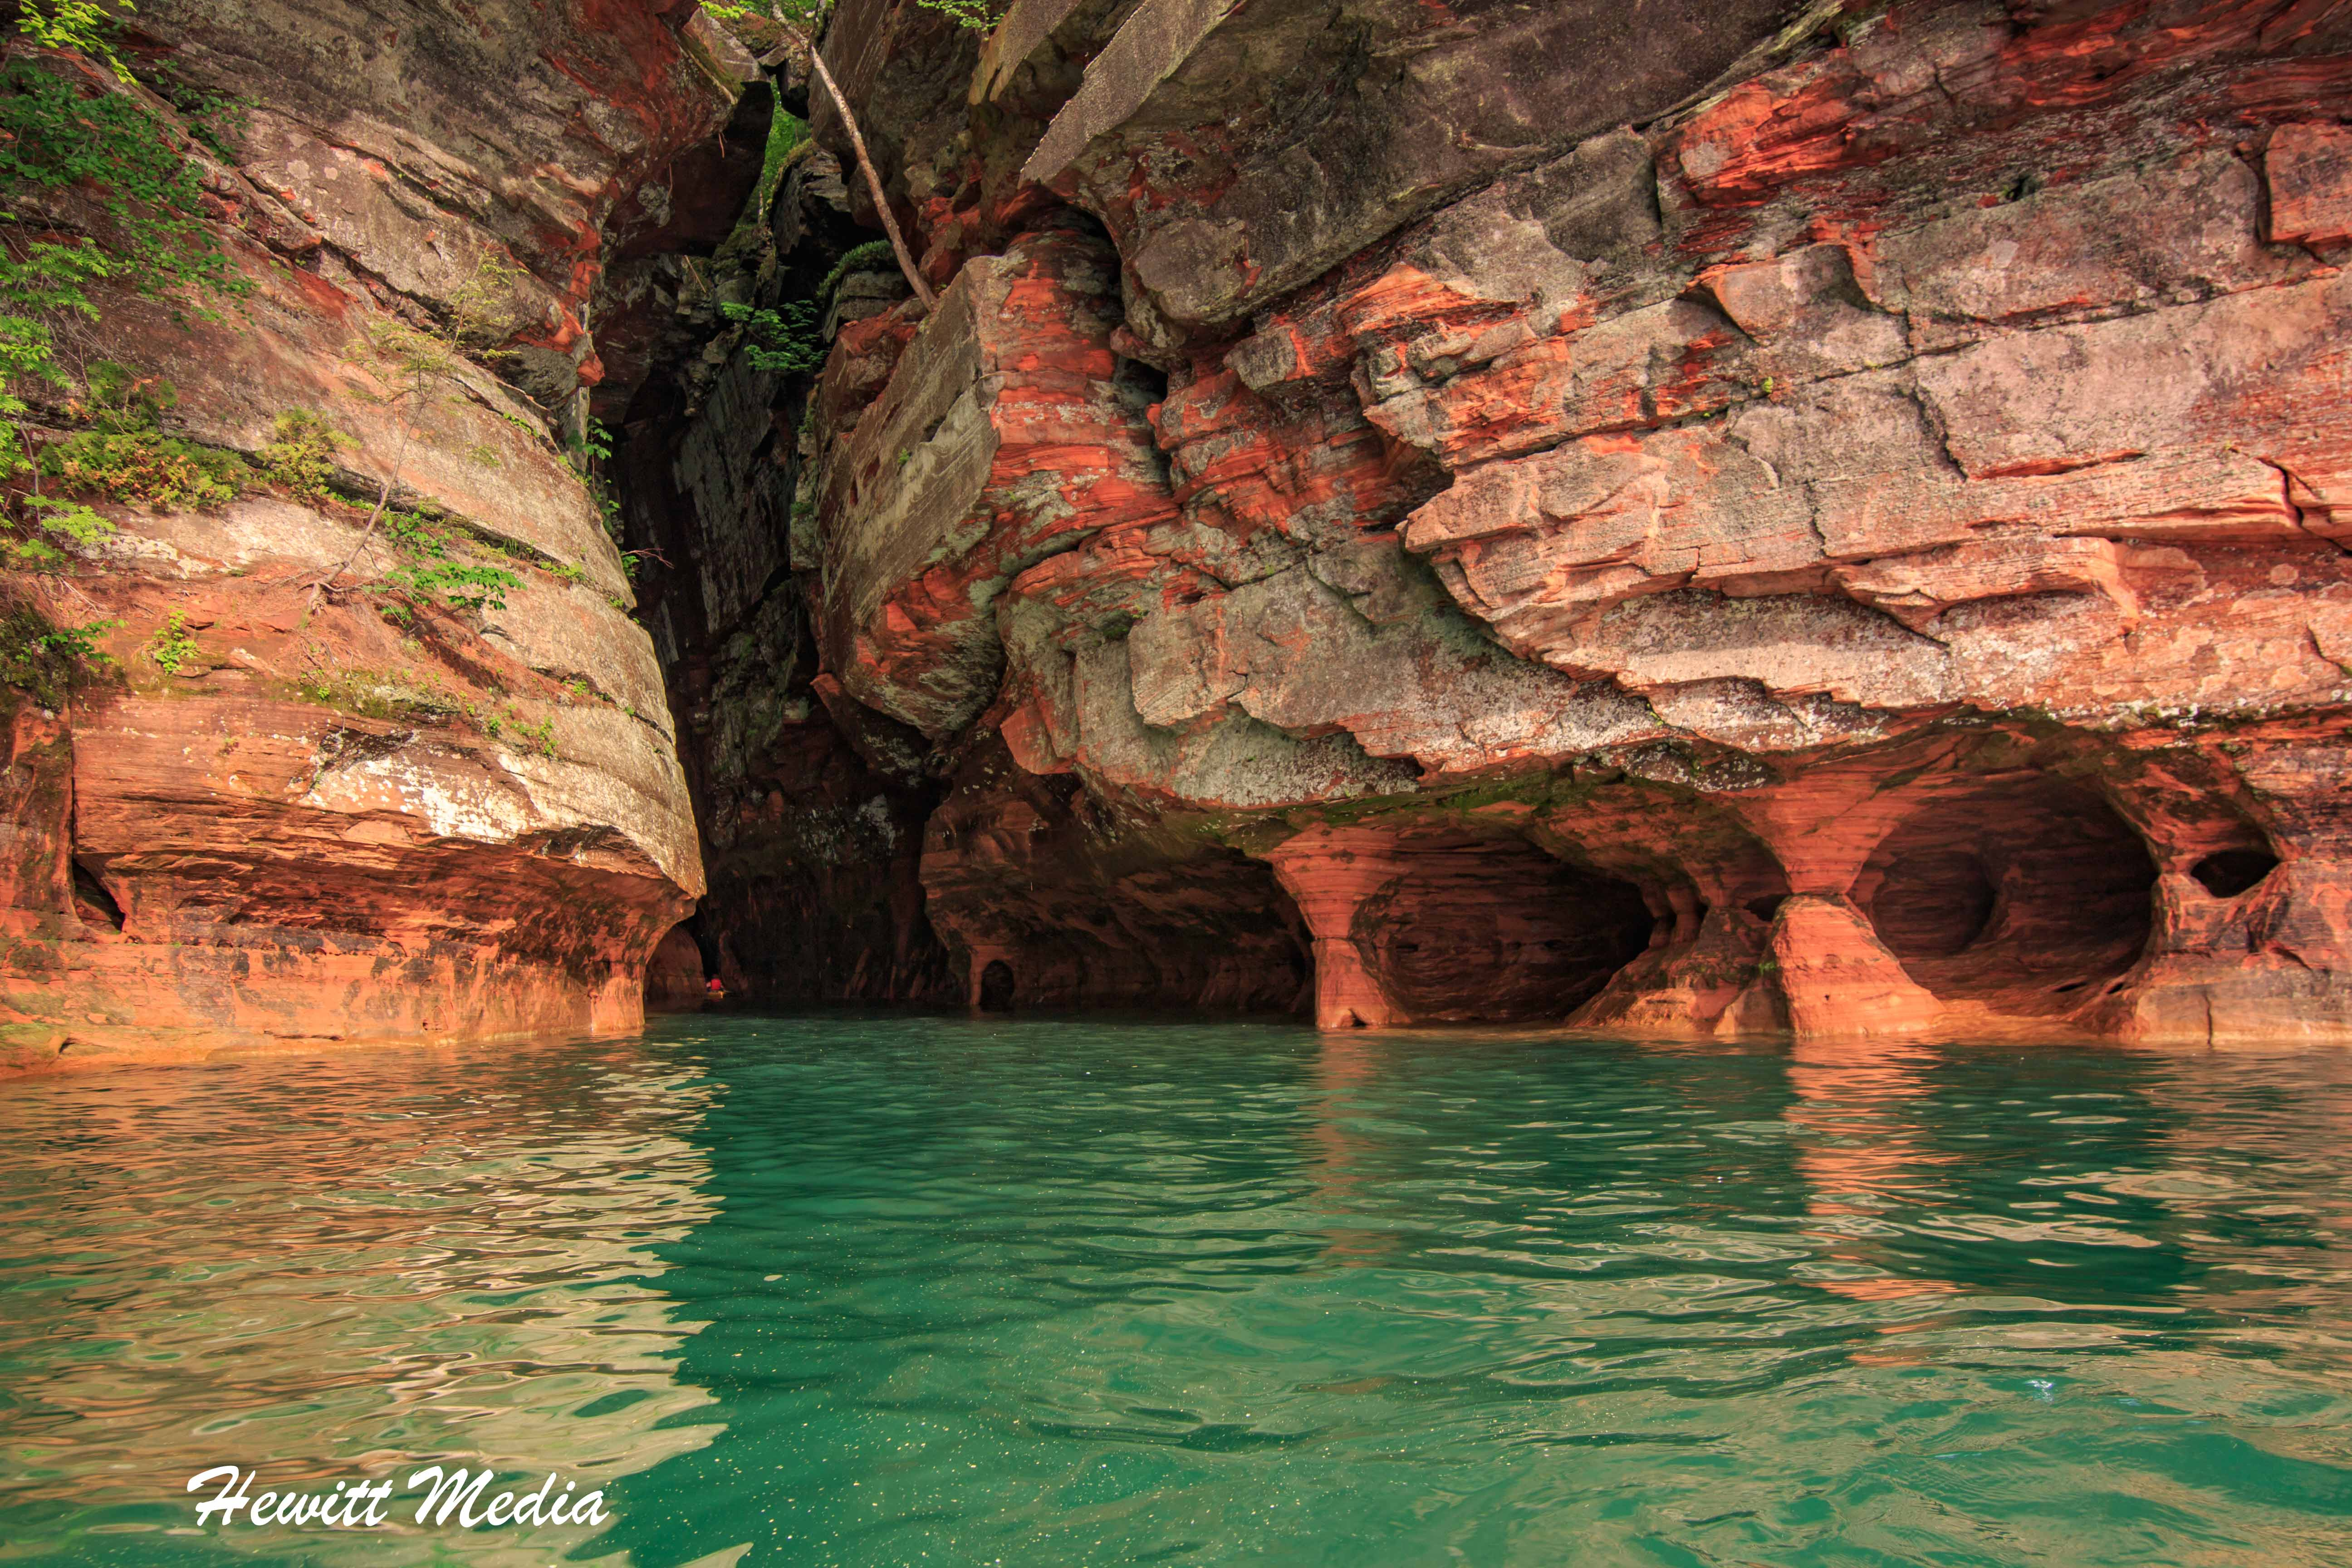 The sea caves in the Apostle Islands